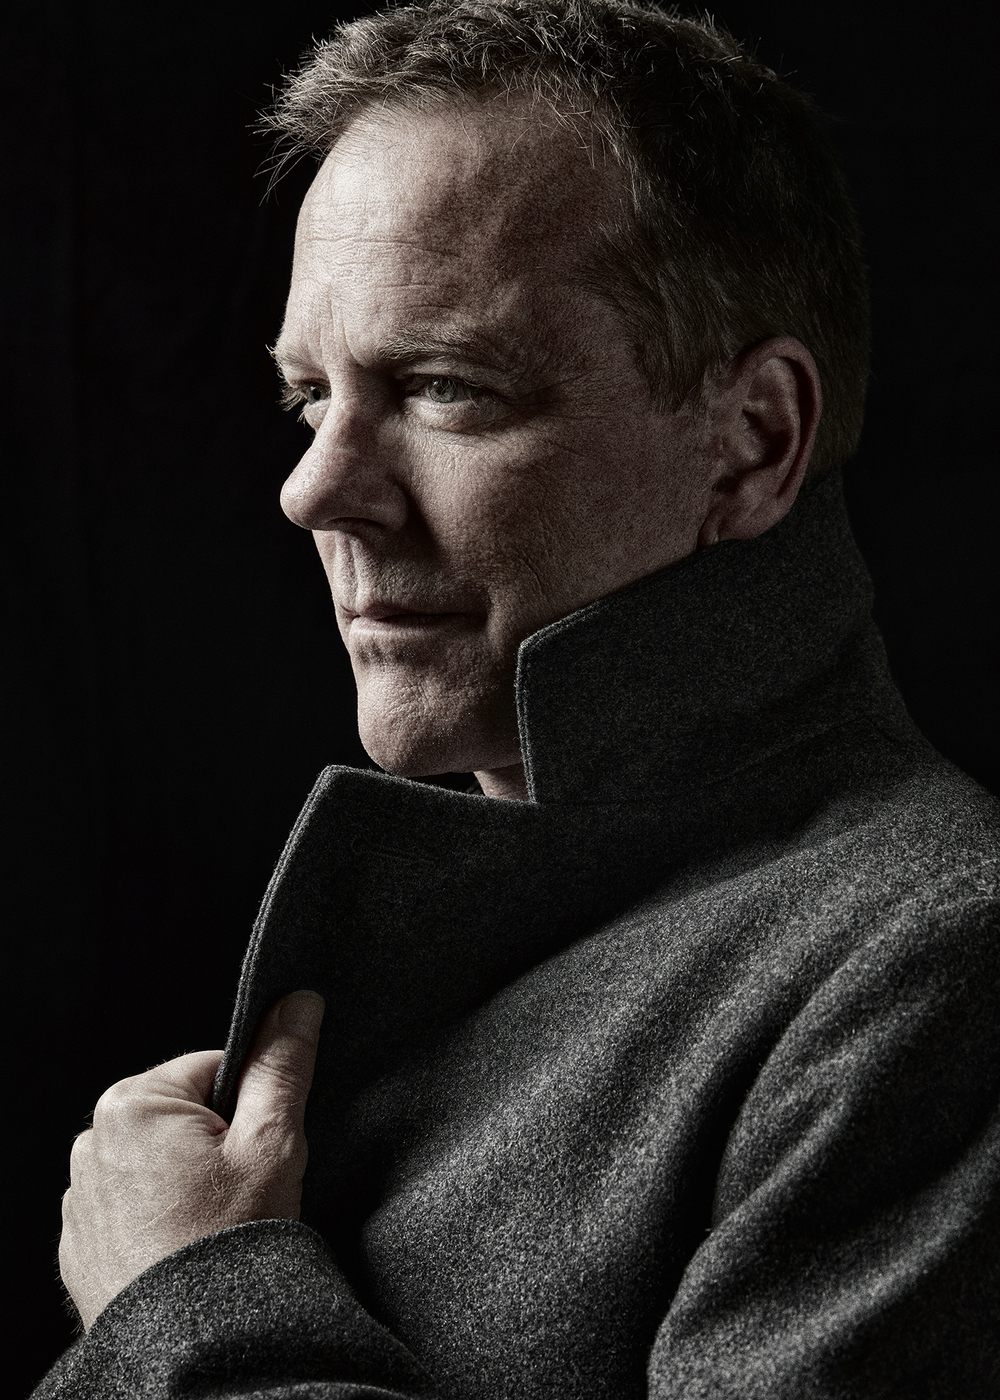 Kiefer_Sutherland_Forsaken_025_Mens_Journal_Color_2000.jpg